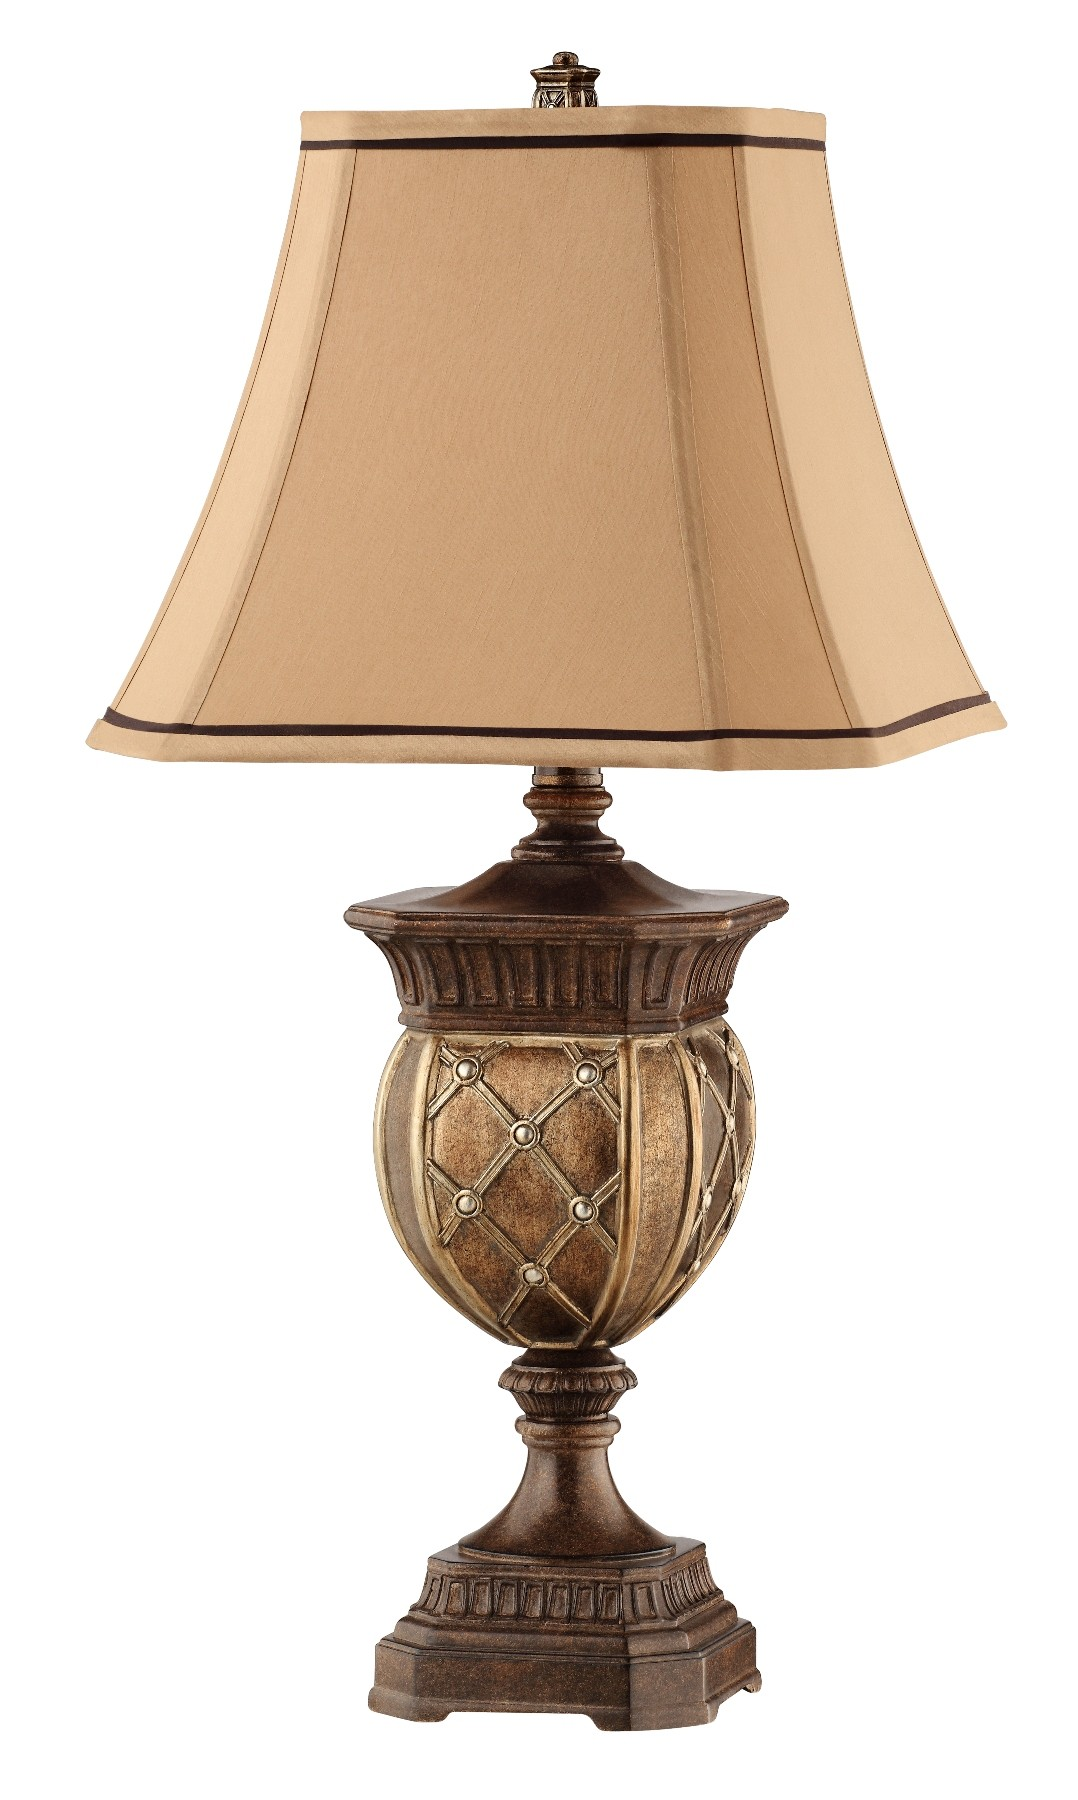 Gold And Bronze Resin Table Lamp From Steinworld 90012